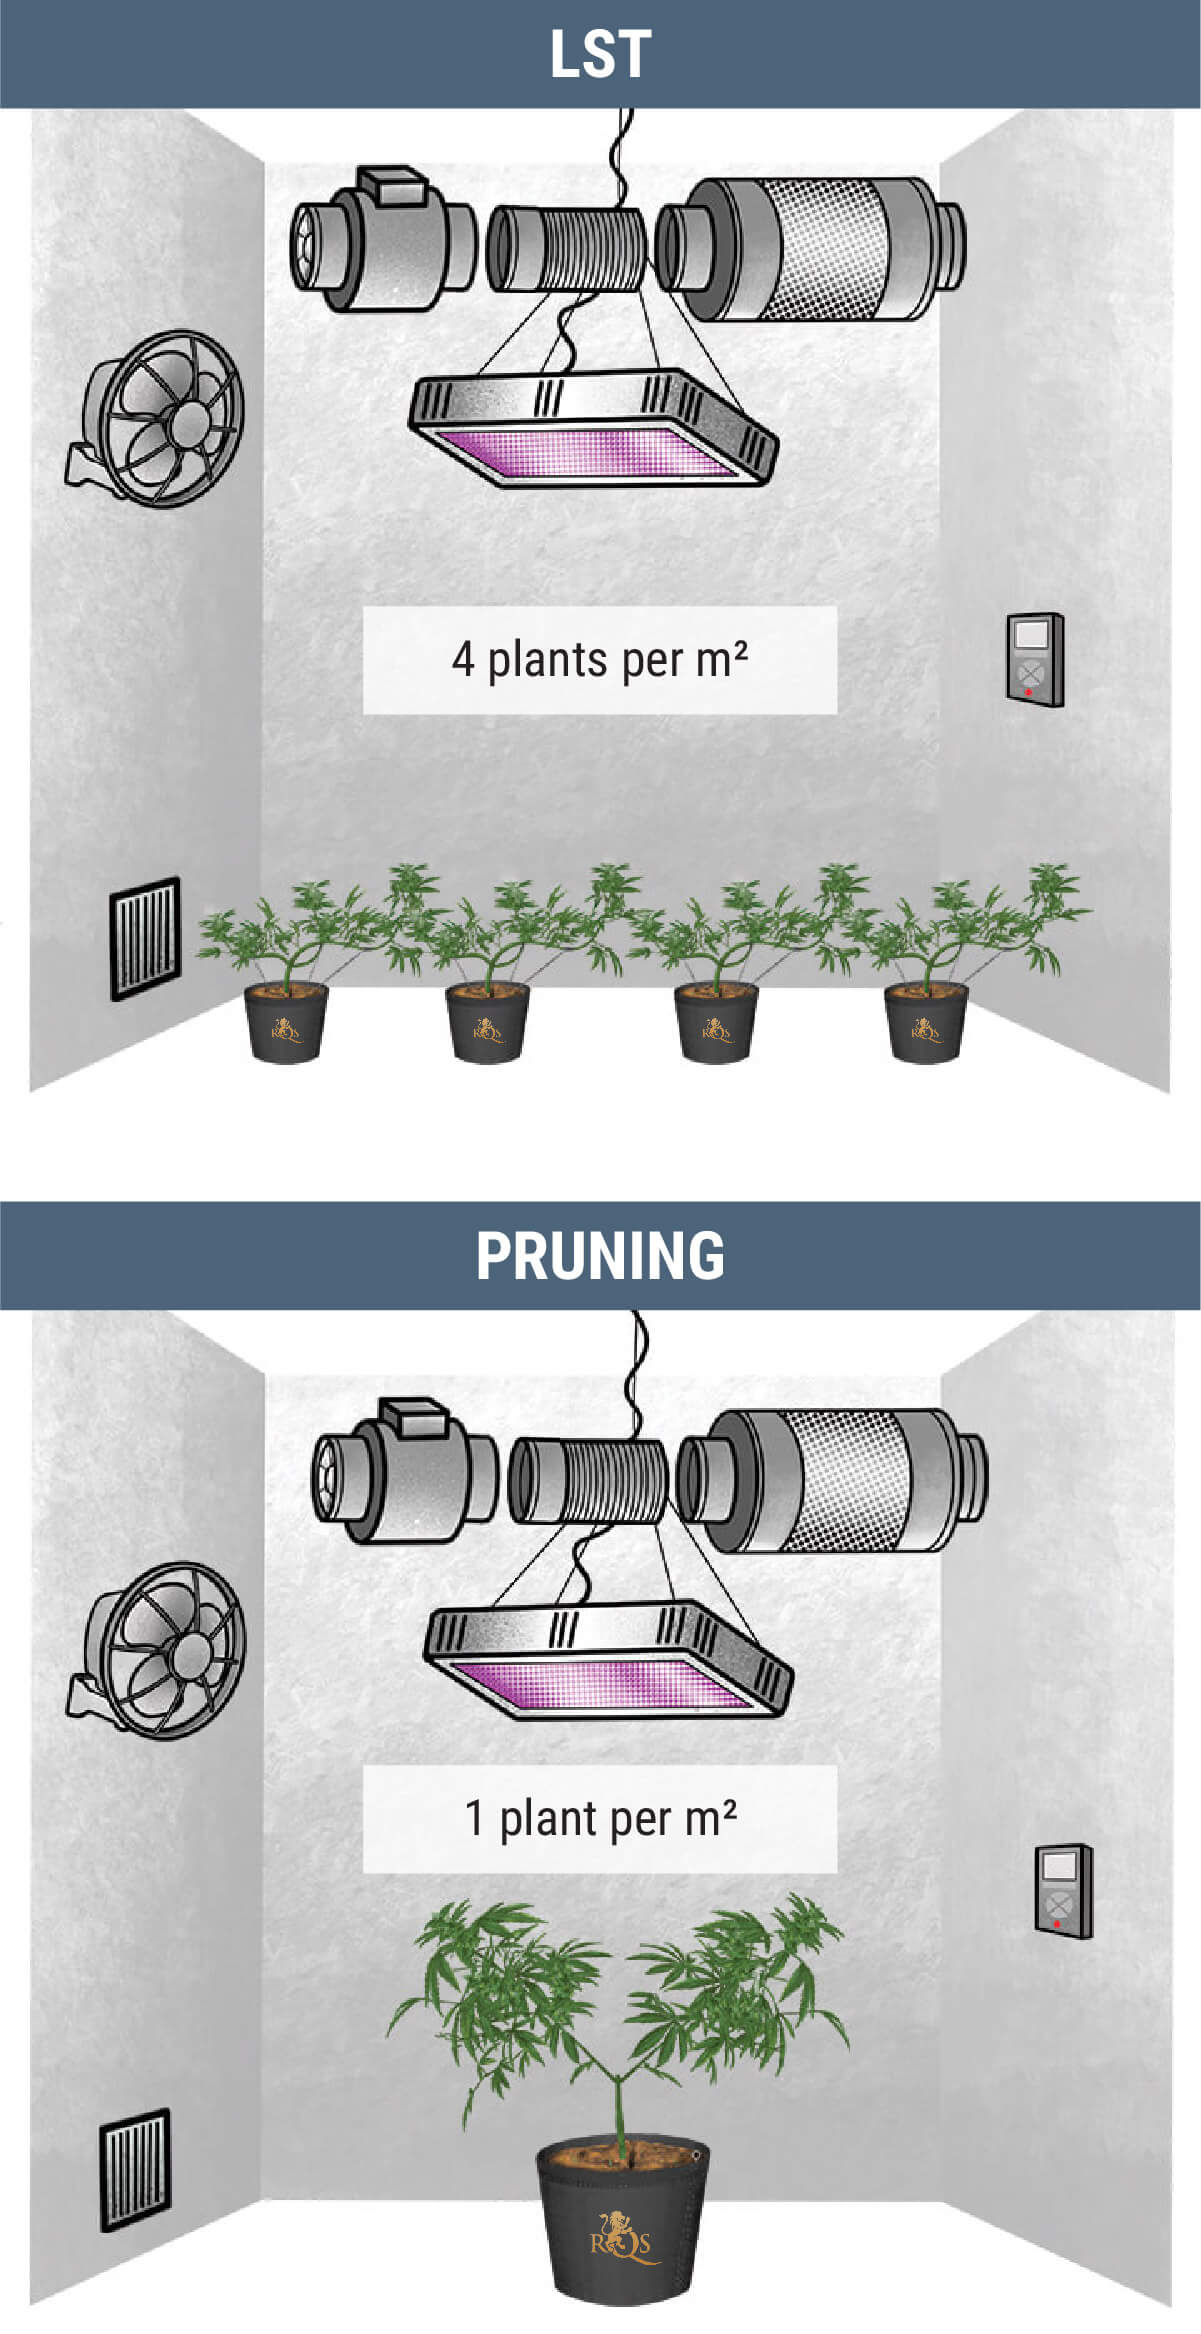 How Many Cannabis Plants Can You Grow Per Square Metre?